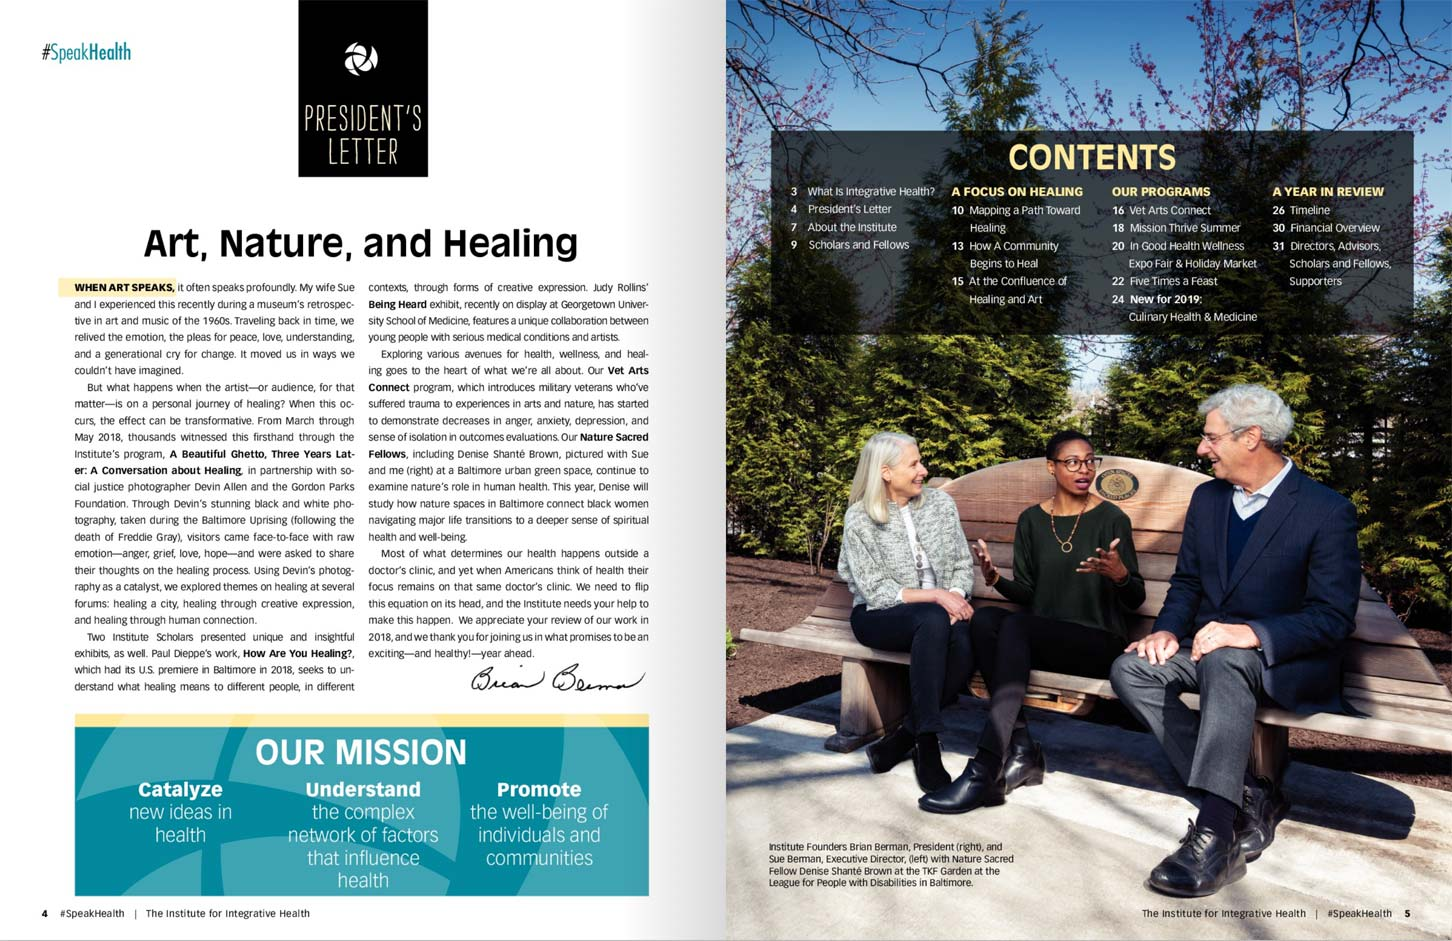 The Institute for Integrative Health 2018 Annual Report.